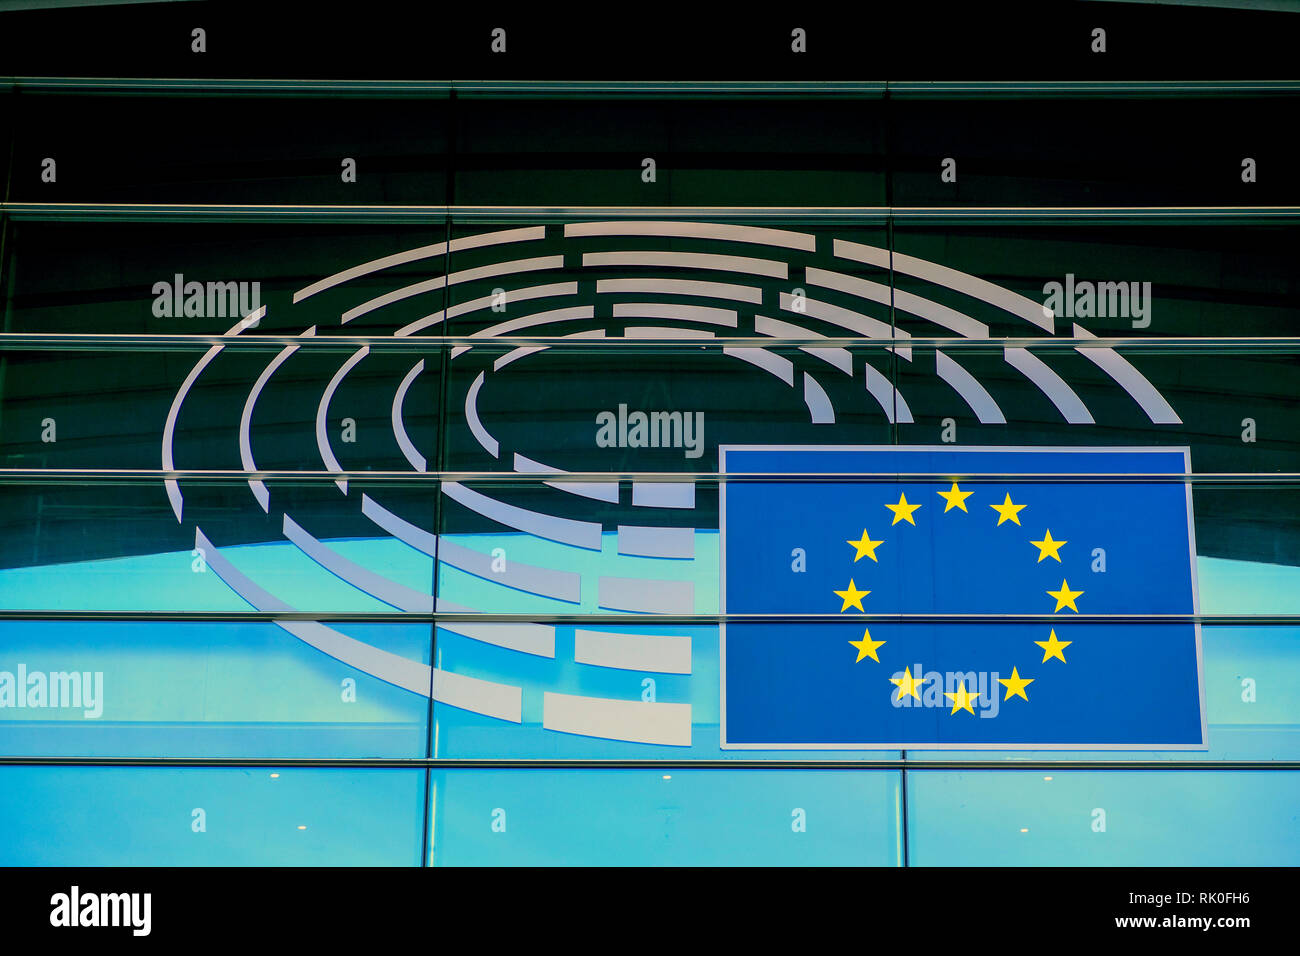 Brussels, Belgium - Logo of the European Parliament in Brussels on the building of Altiero Spinelli, Bruessel, Belgien - Logo des Europaeischen Parlam - Stock Image